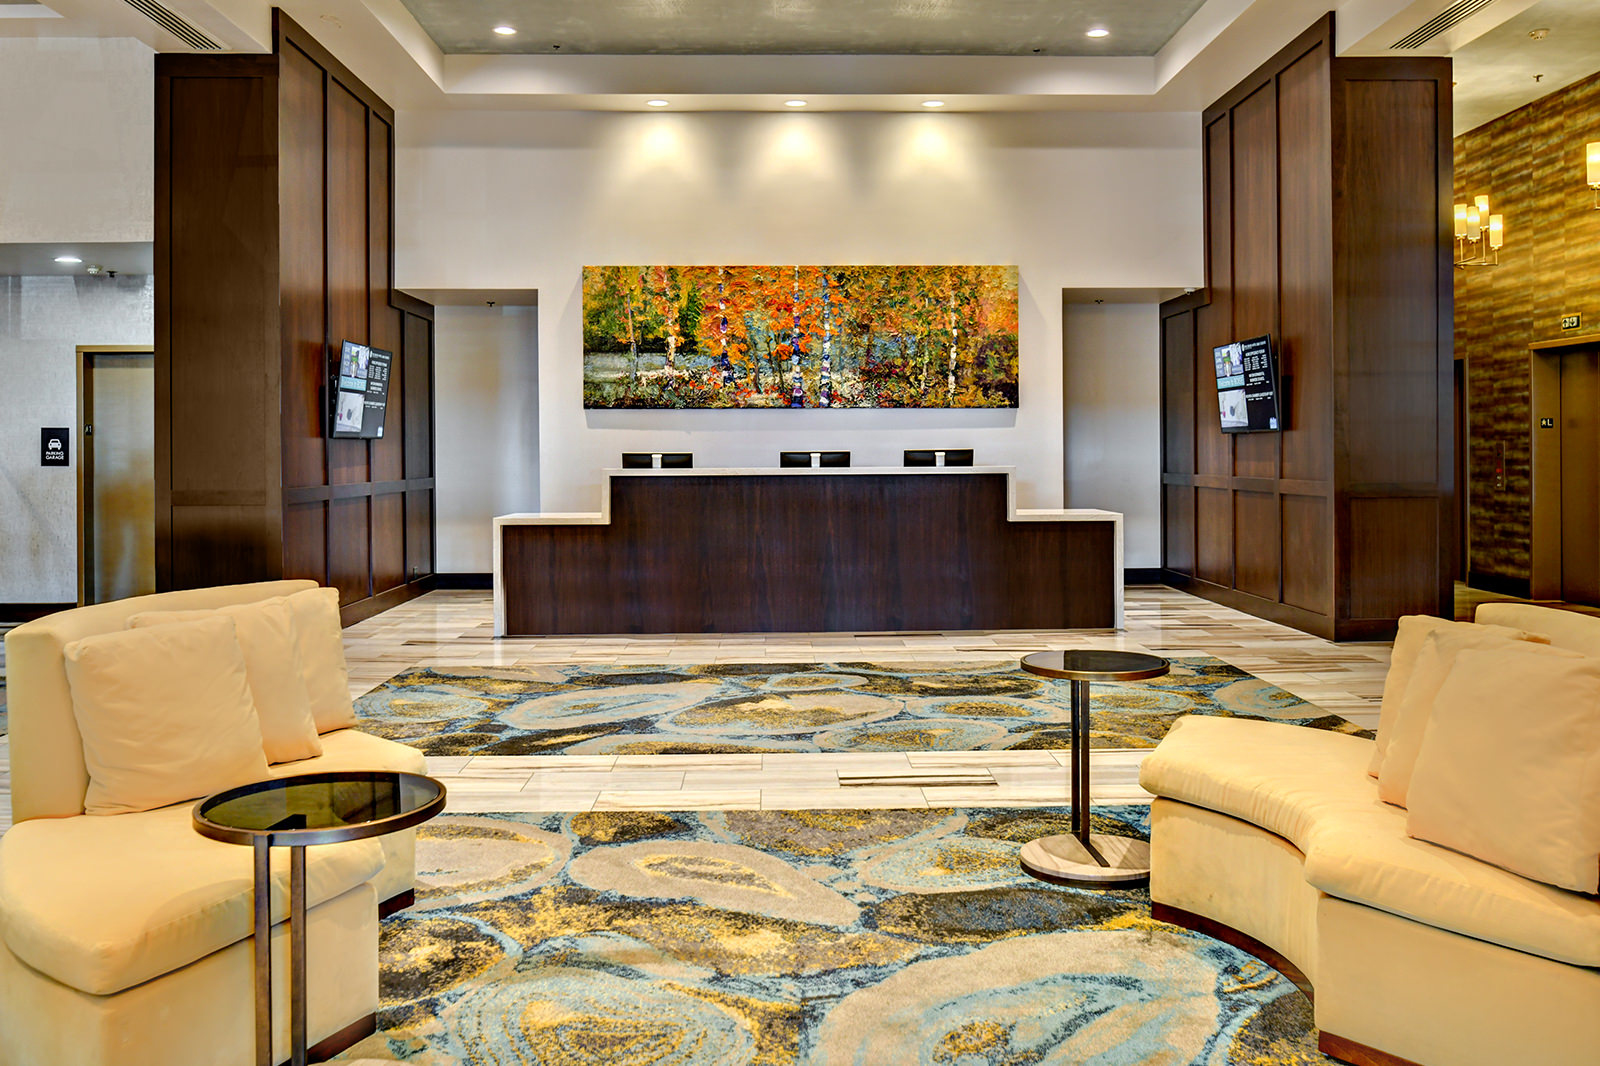 Grove Hotel Front Desk and lobby